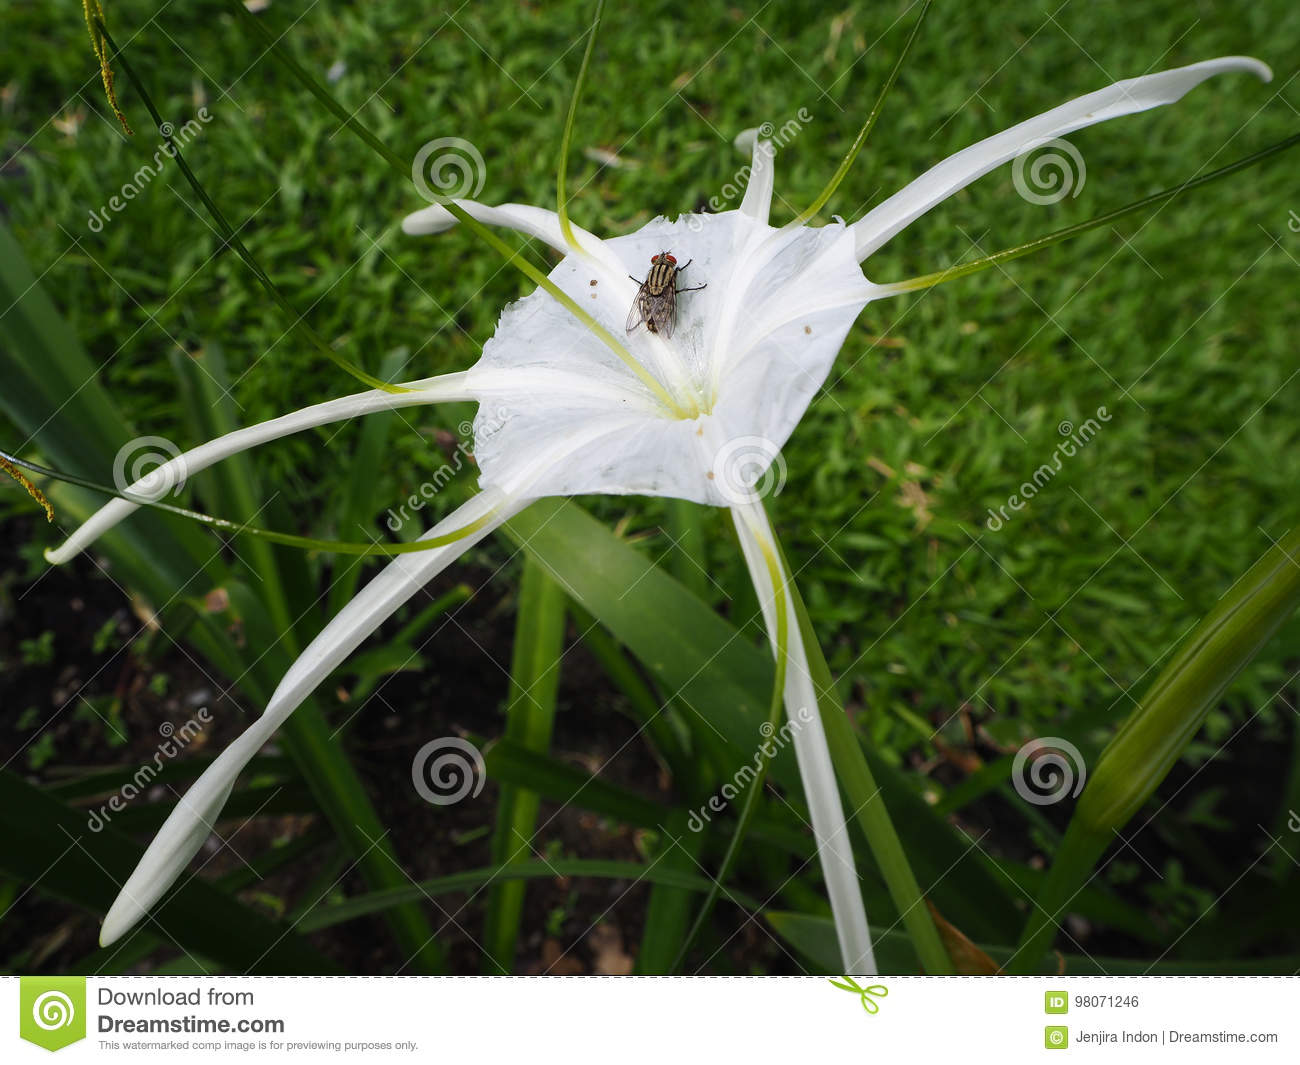 The fly on the spider lily flower stock photo image of background the fly on the spider lily flower izmirmasajfo Image collections